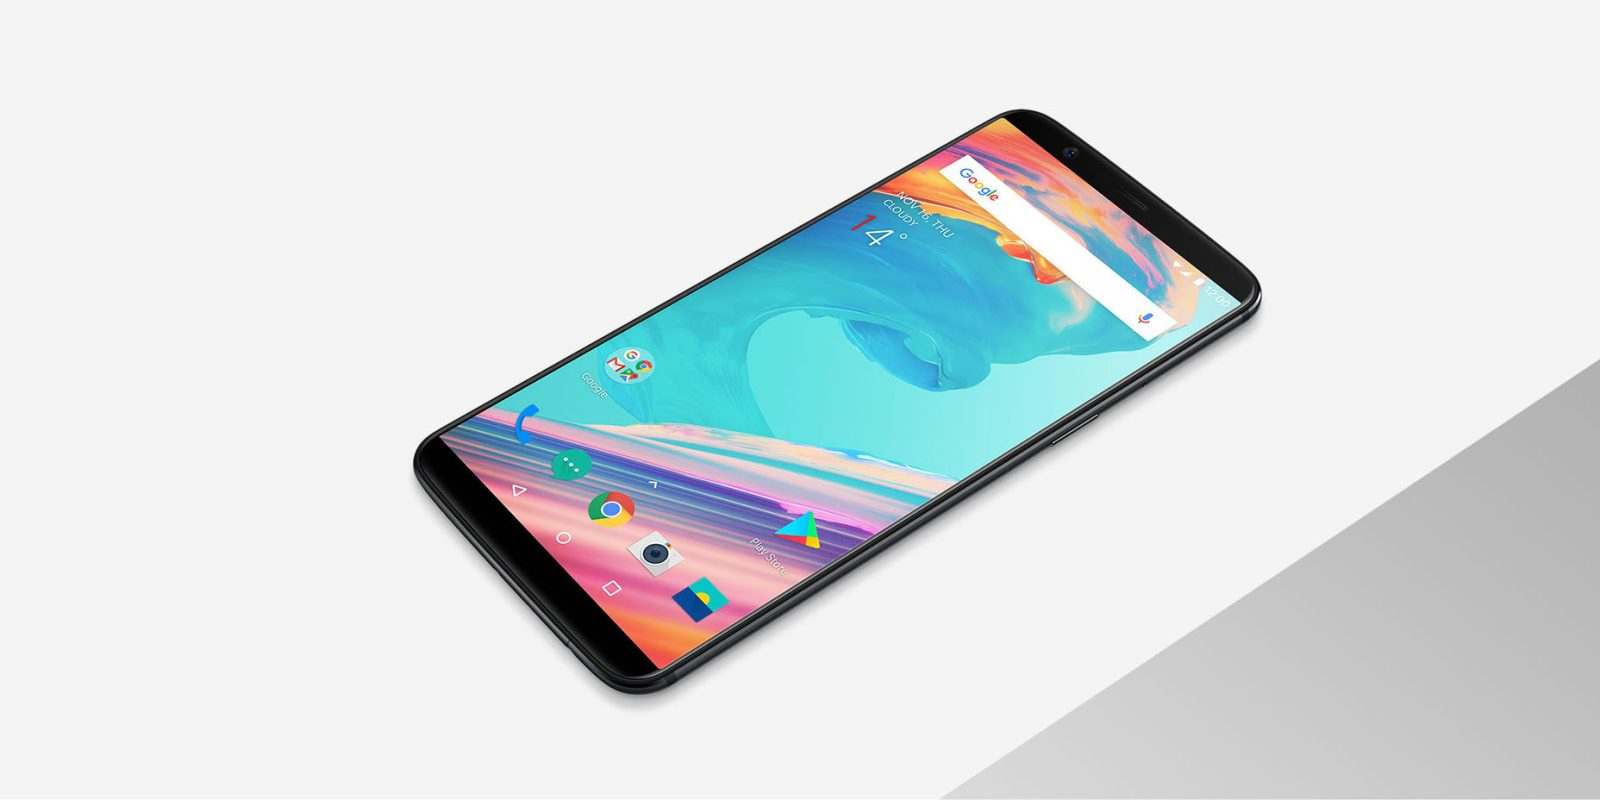 Oneplus 5t Android 8